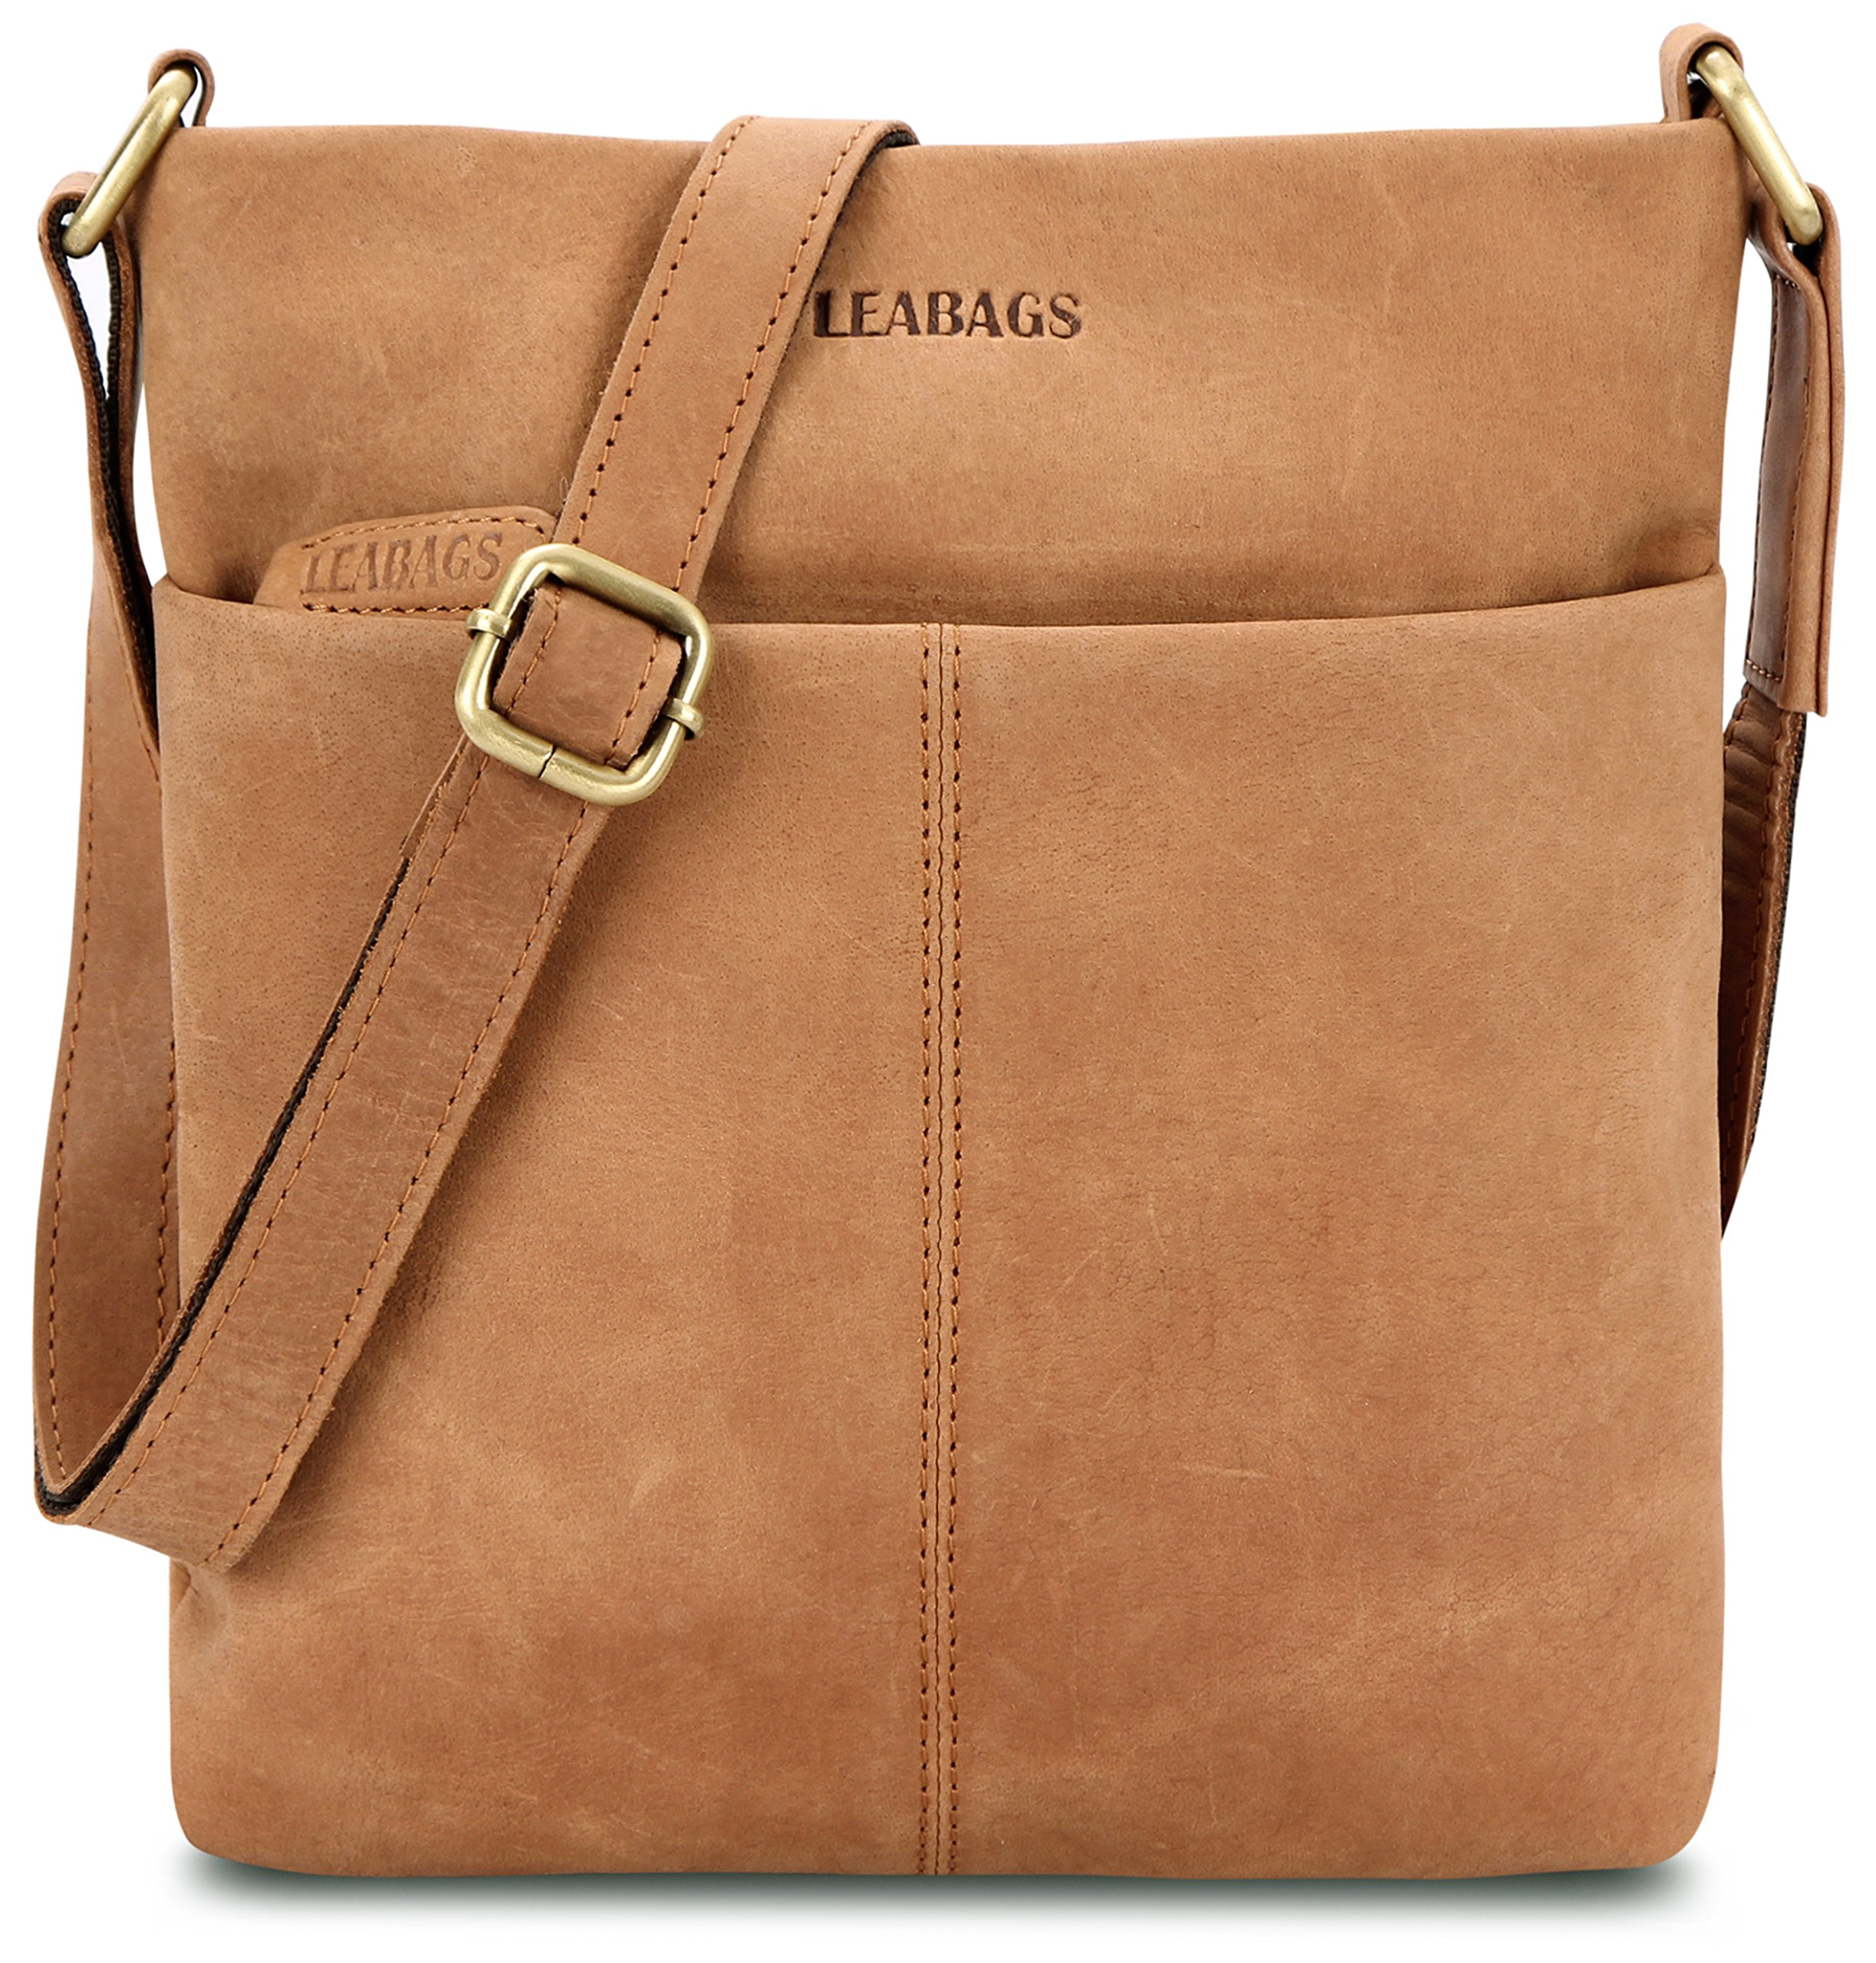 LEABAGS Seattle genuine buffalo leather crossbody bag in vintage style - Brown